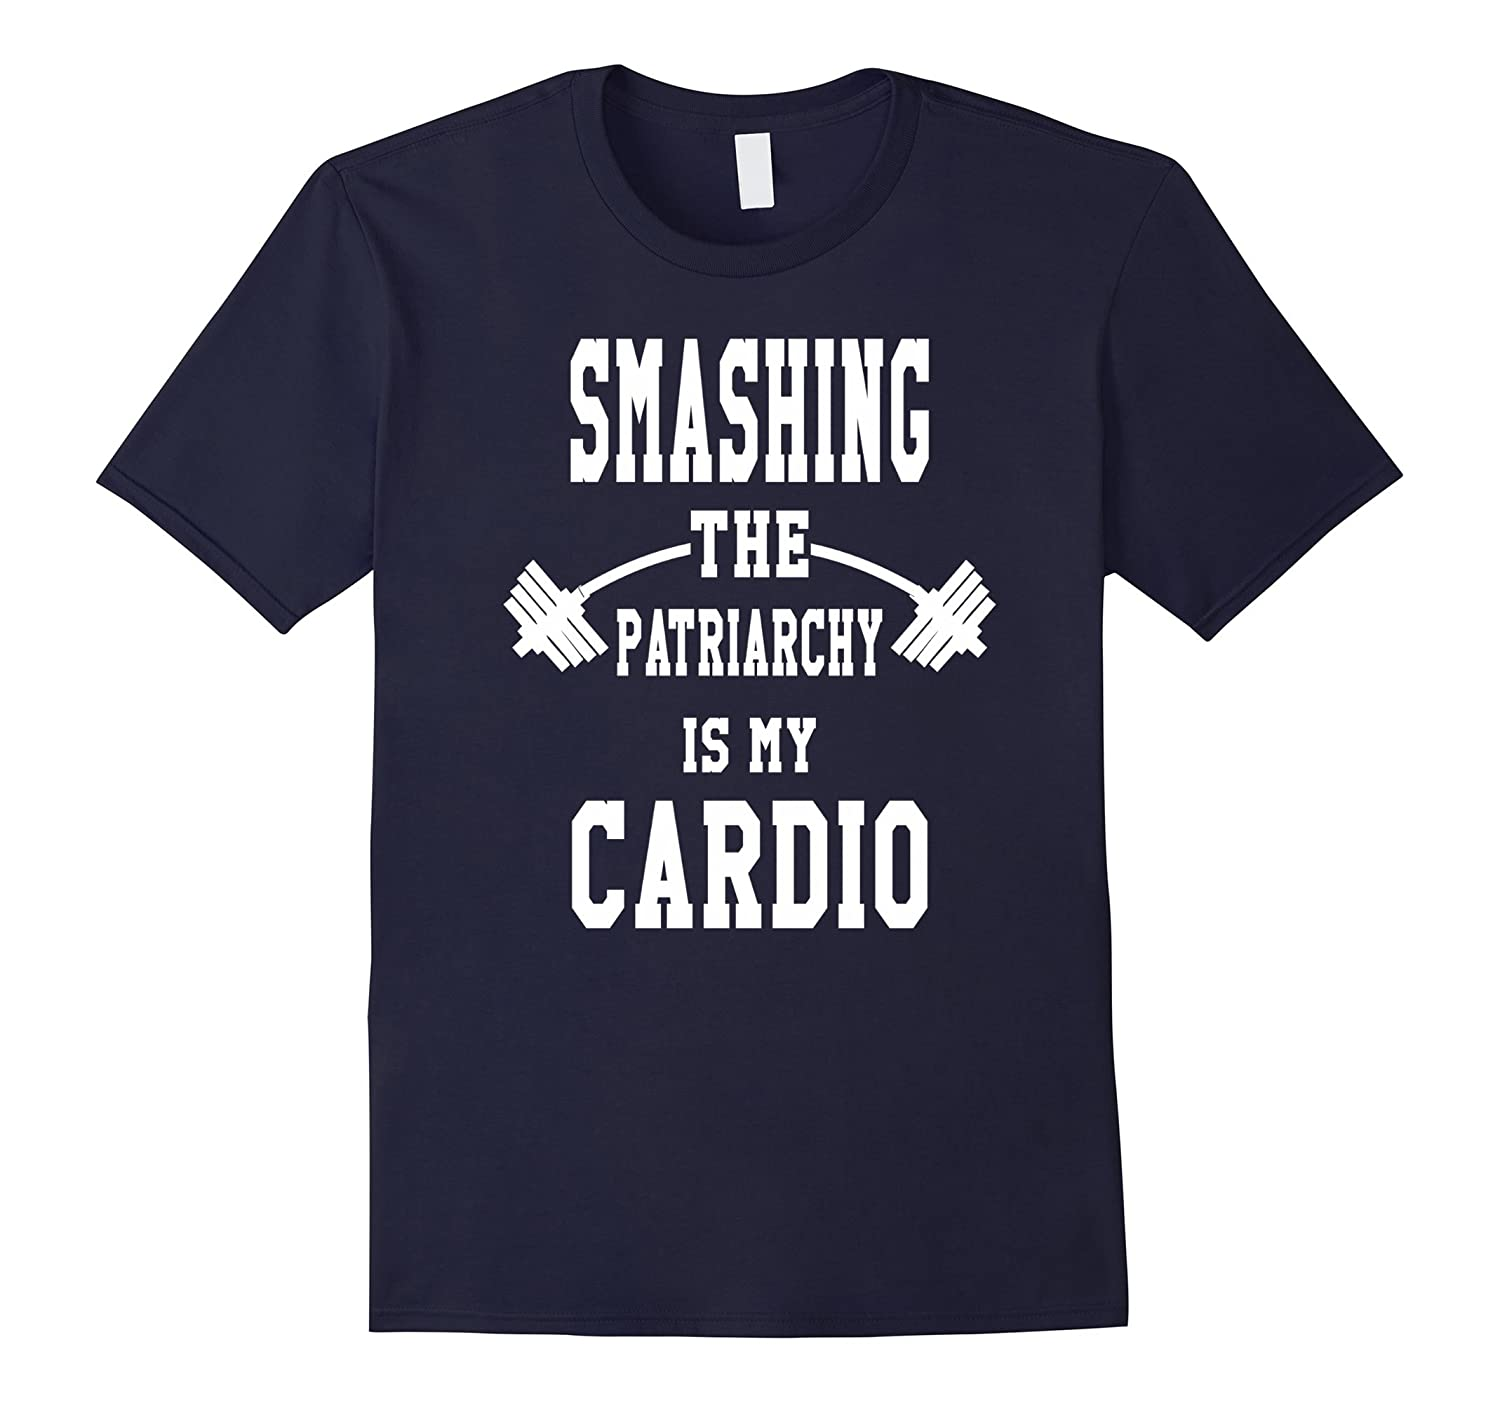 Smashing The Patriarchy Is My Cardio Funny Feminist T-Shirt